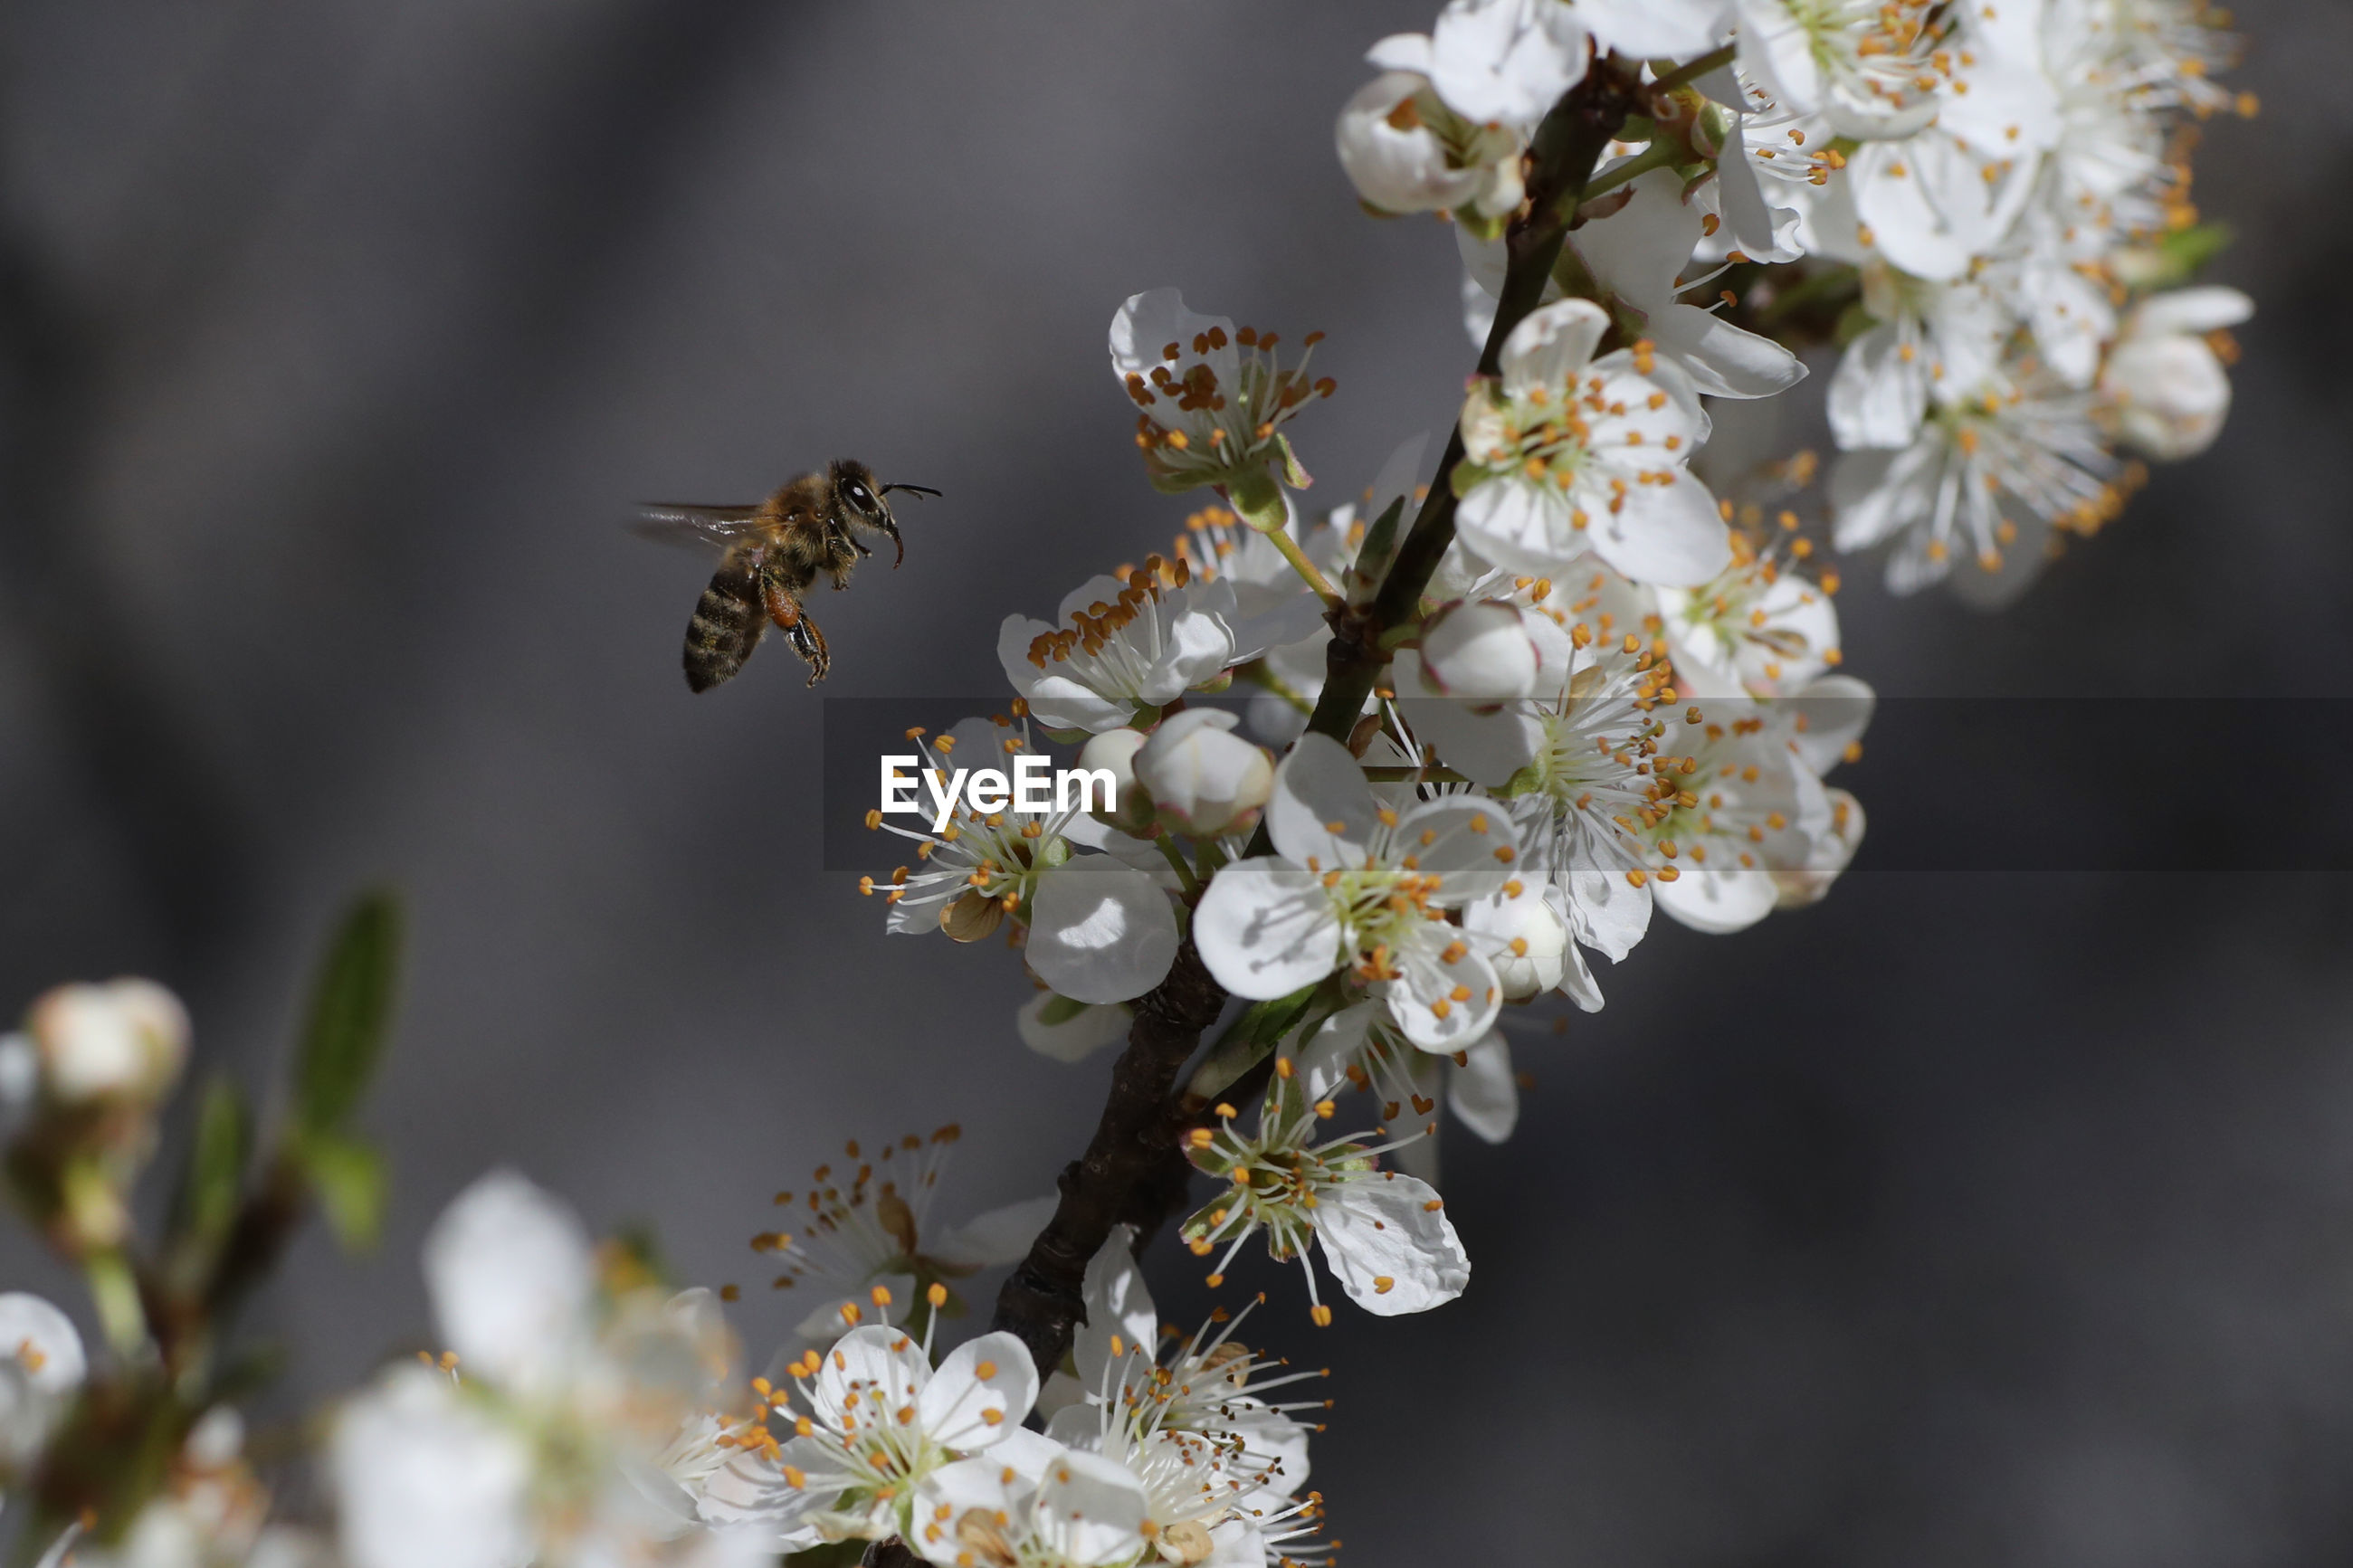 CLOSE-UP OF BEE ON WHITE CHERRY BLOSSOMS